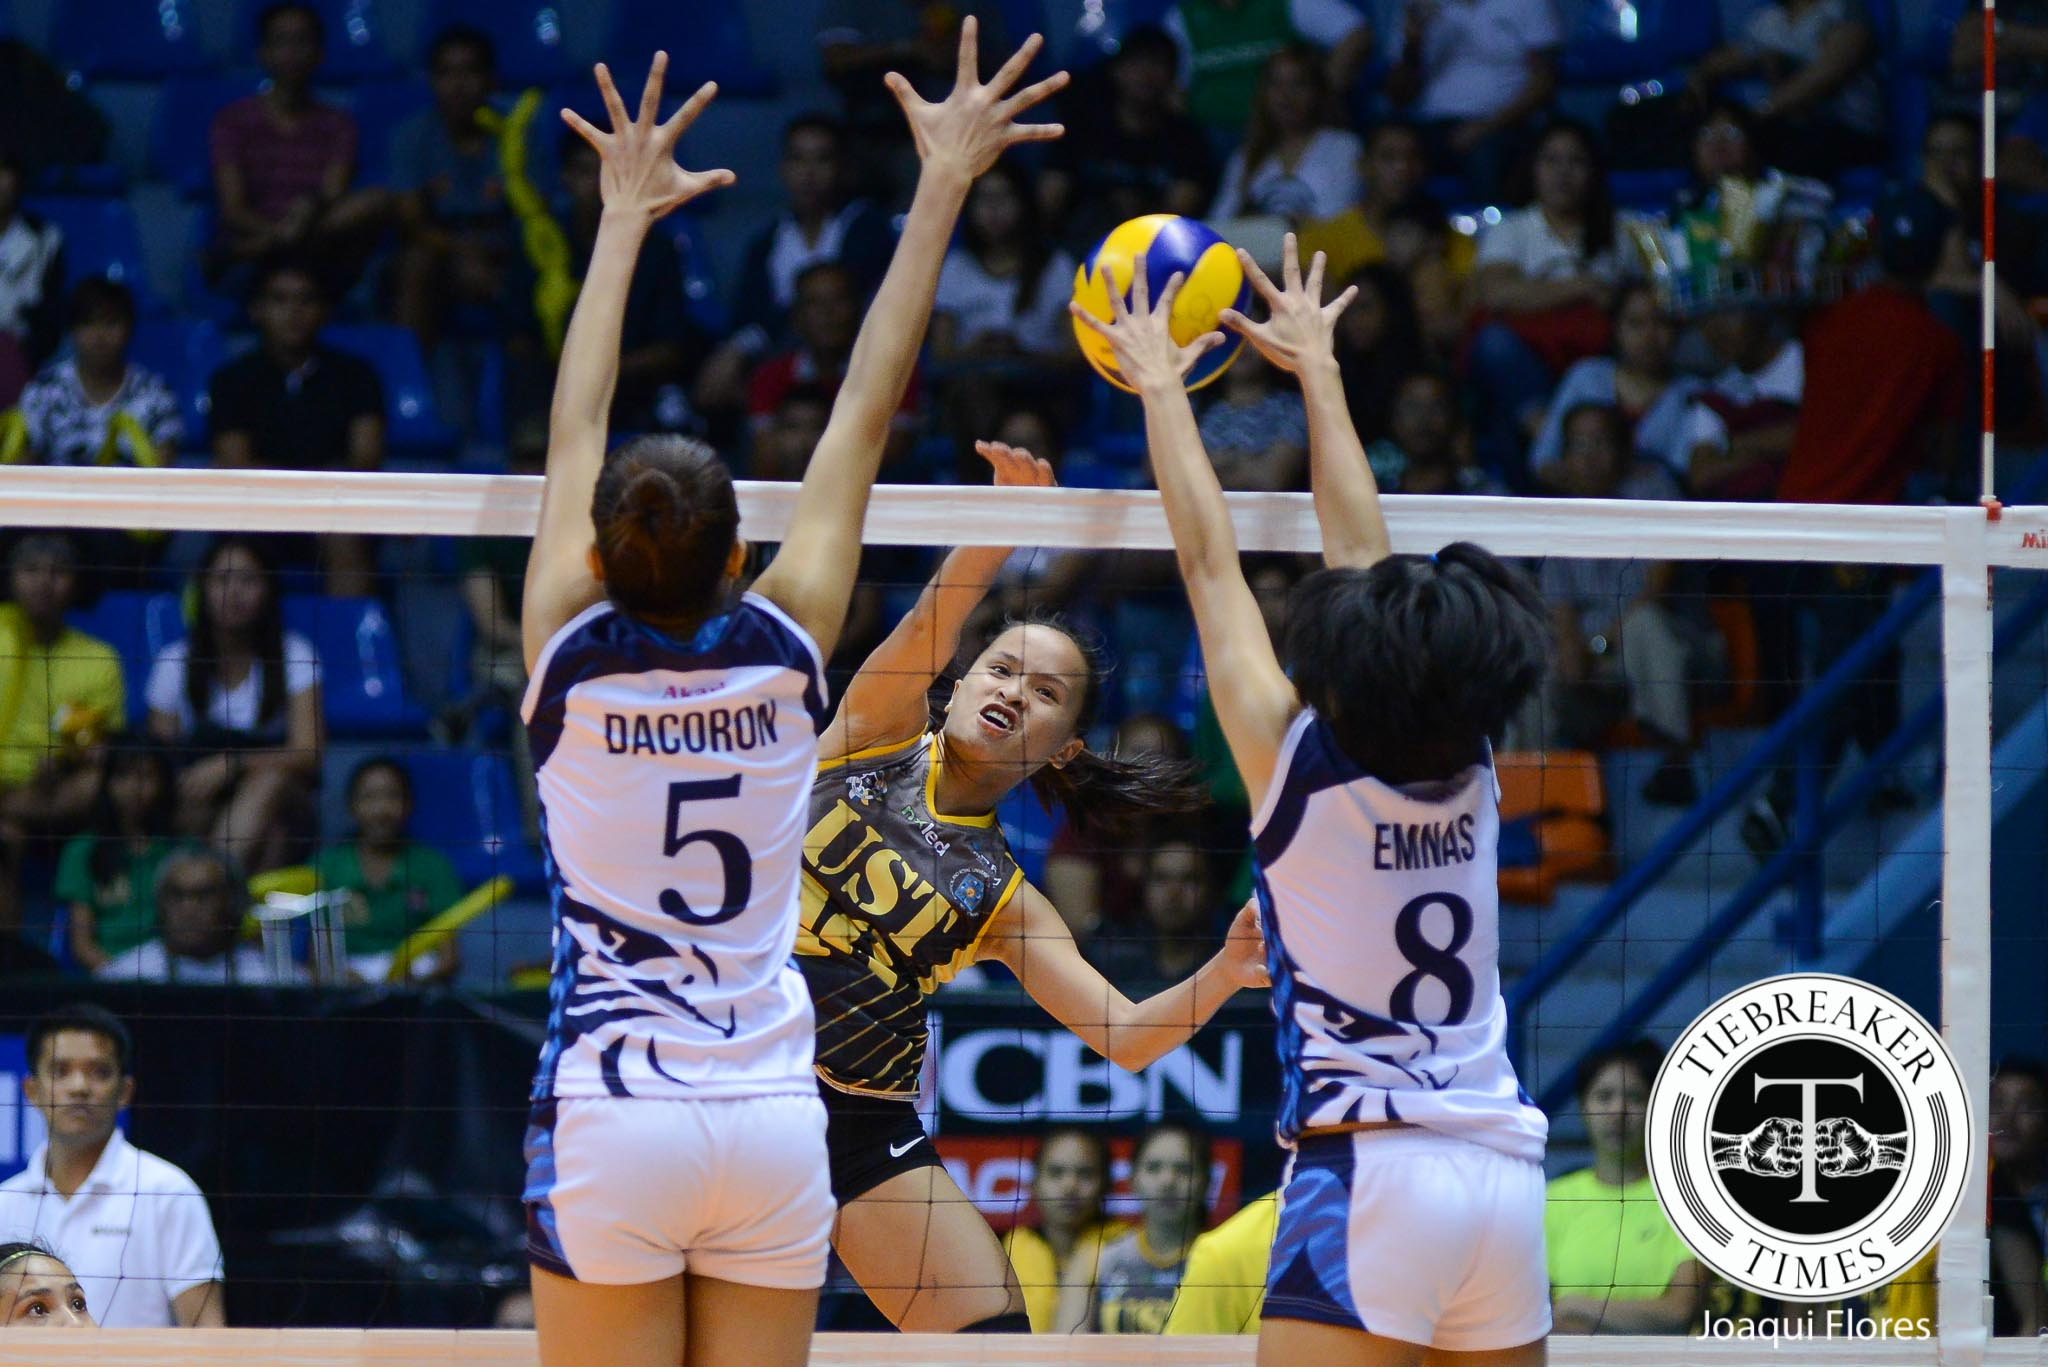 Tiebreaker Times UST avenges first round loss to Adamson AdU News UAAP UST Volleyball  UST Women's Volleyball UAAP Season 78 Women's Vollyeball UAAP Season 78 Rica Rivera Mylene Paat May Roque Kung Fu Reyes Jessey De Leon Jema Galanza Jellie Tempiatura EJ Laure Domeng custodio Cherry Rondina AdU Women's Volleyball